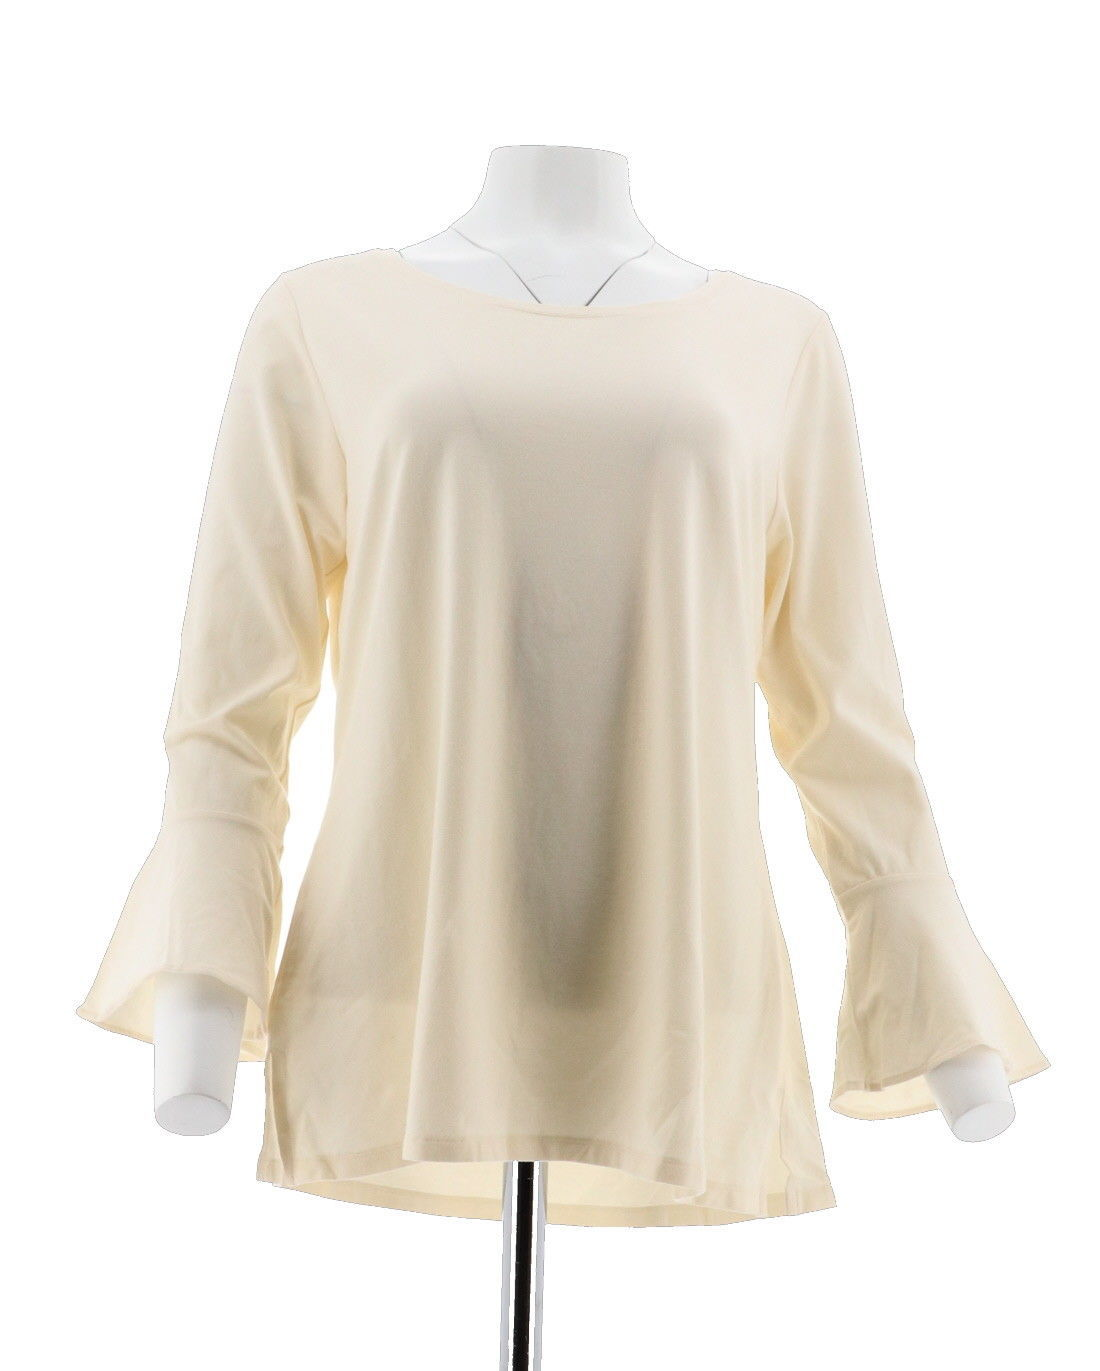 Primary image for Isaac Mizrahi Scoop Neck Top Bracelet Ruffle Slv Cream L NEW A294436